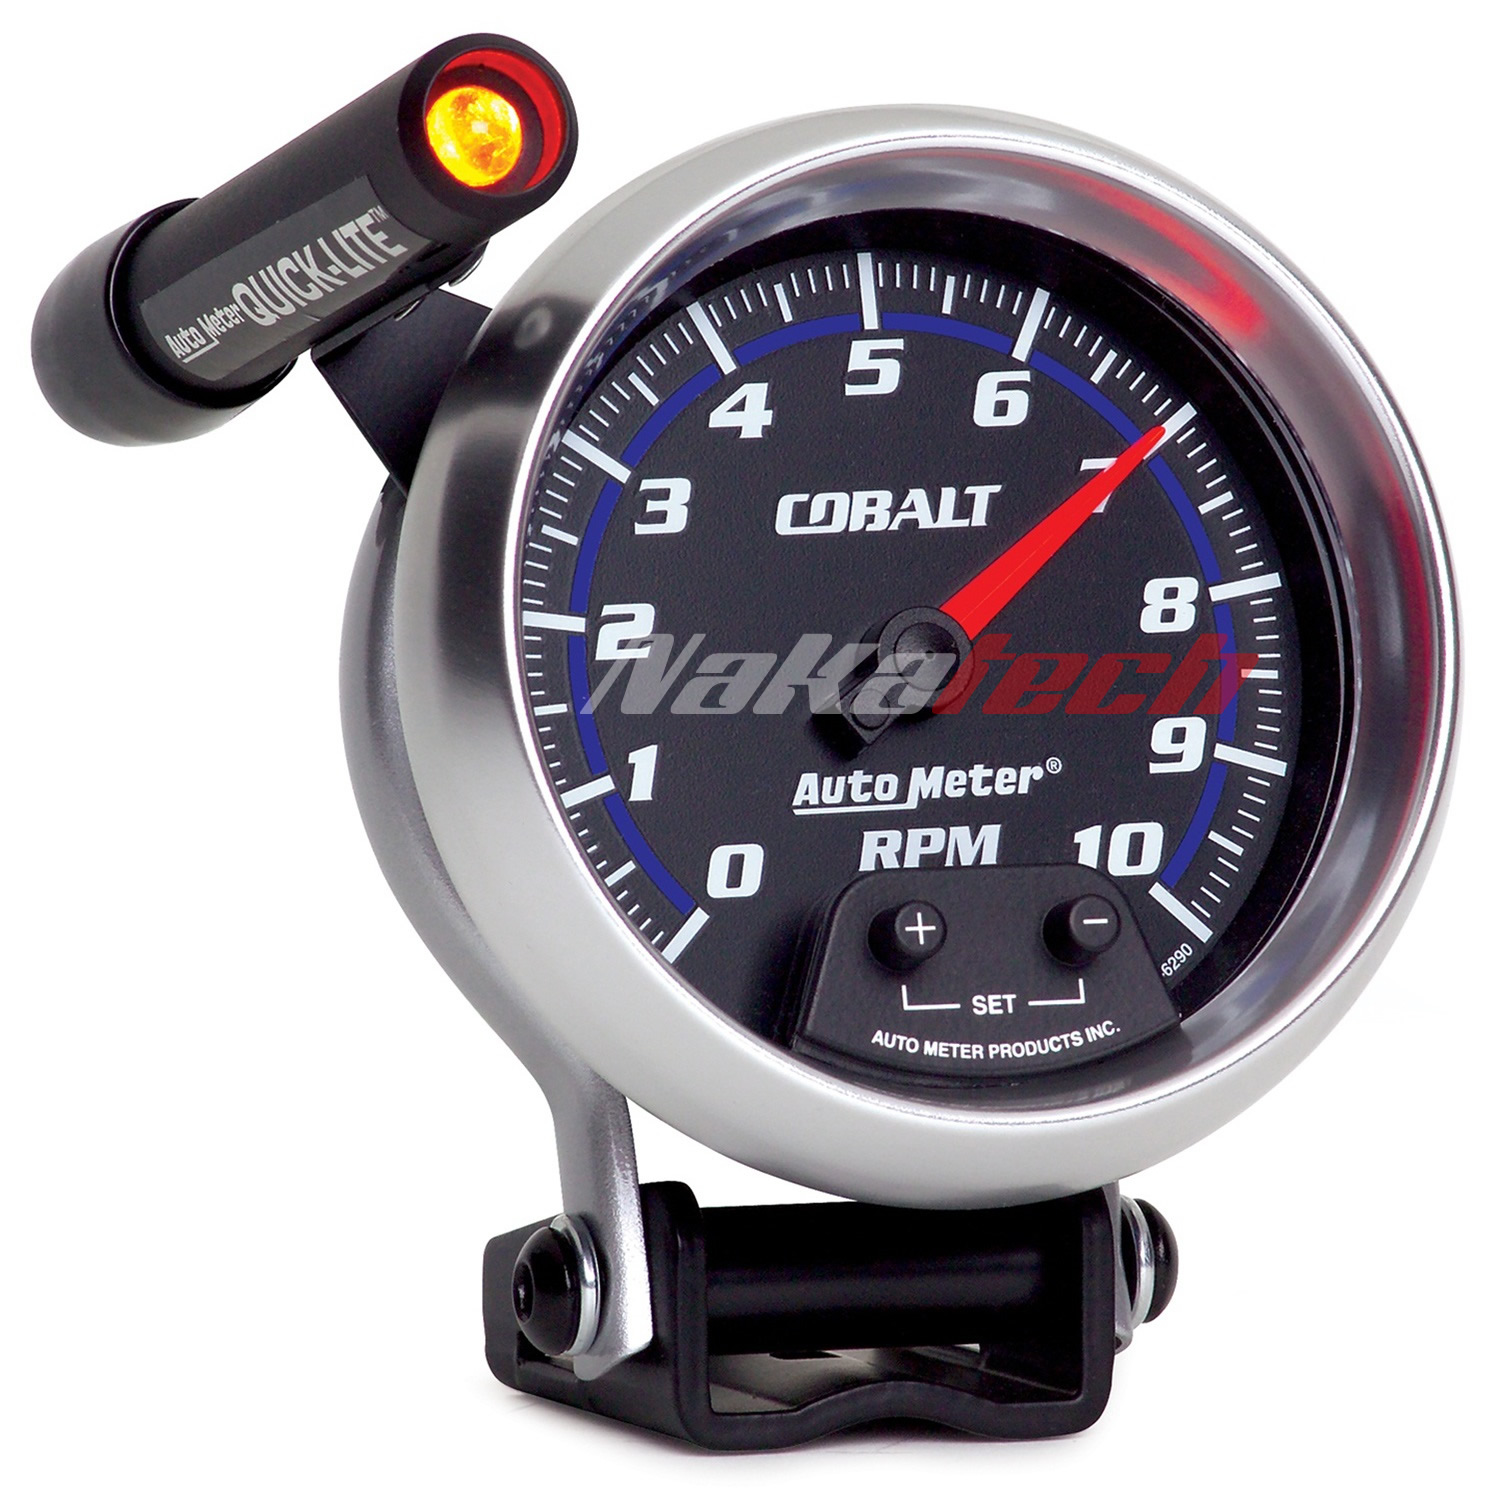 Autometer Mini Cobalt